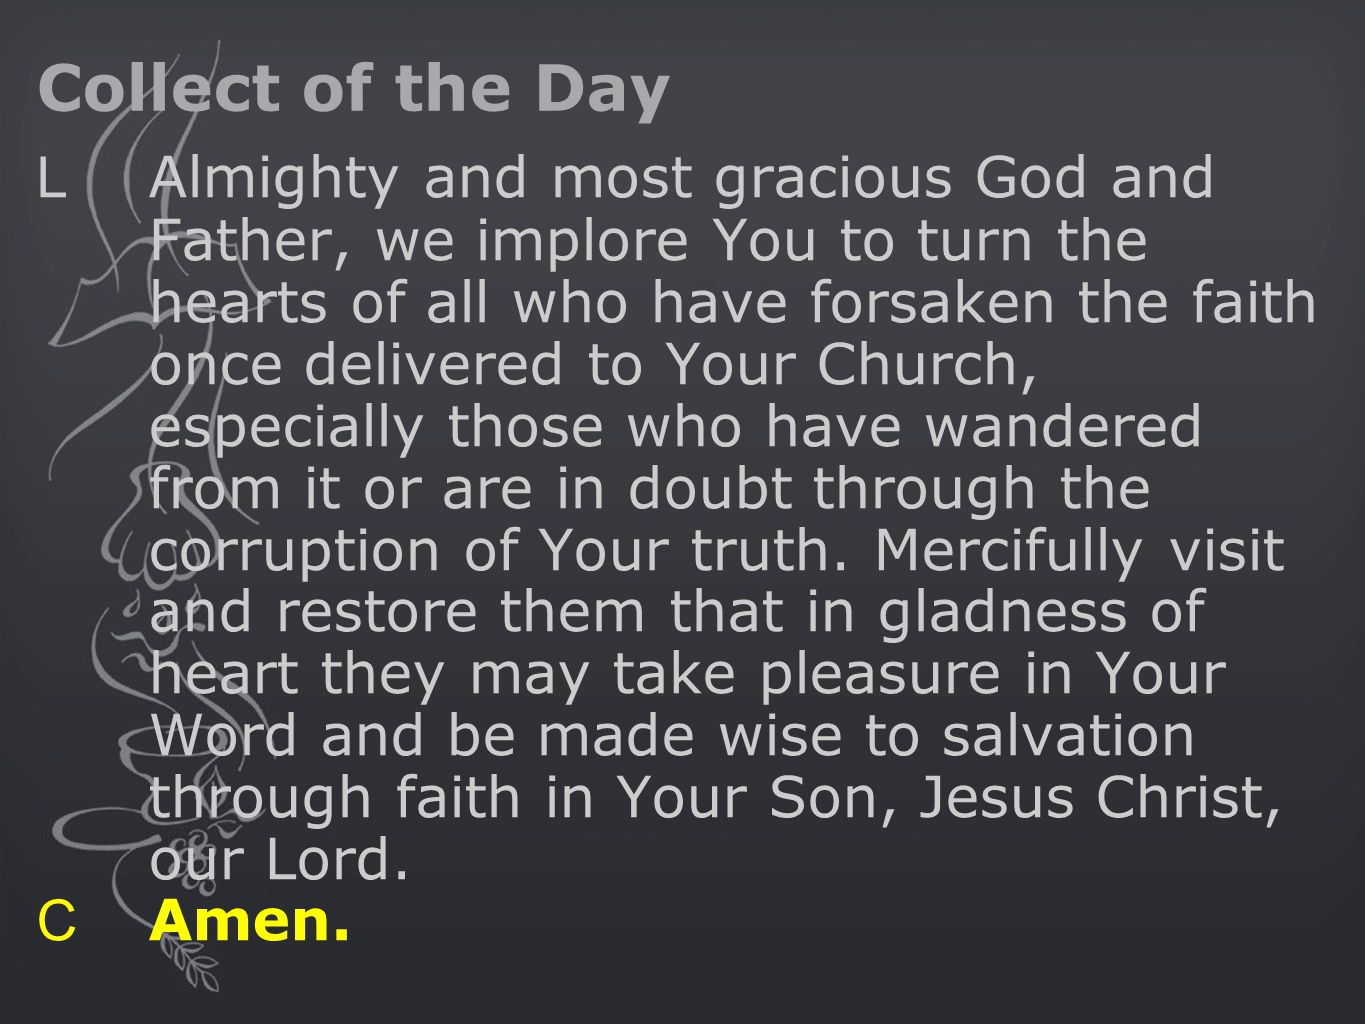 Collect of the Day L Almighty and most gracious God and Father, we implore You to turn the hearts of all who have forsaken the faith once delivered to Your Church, especially those who have wandered from it or are in doubt through the corruption of Your truth.